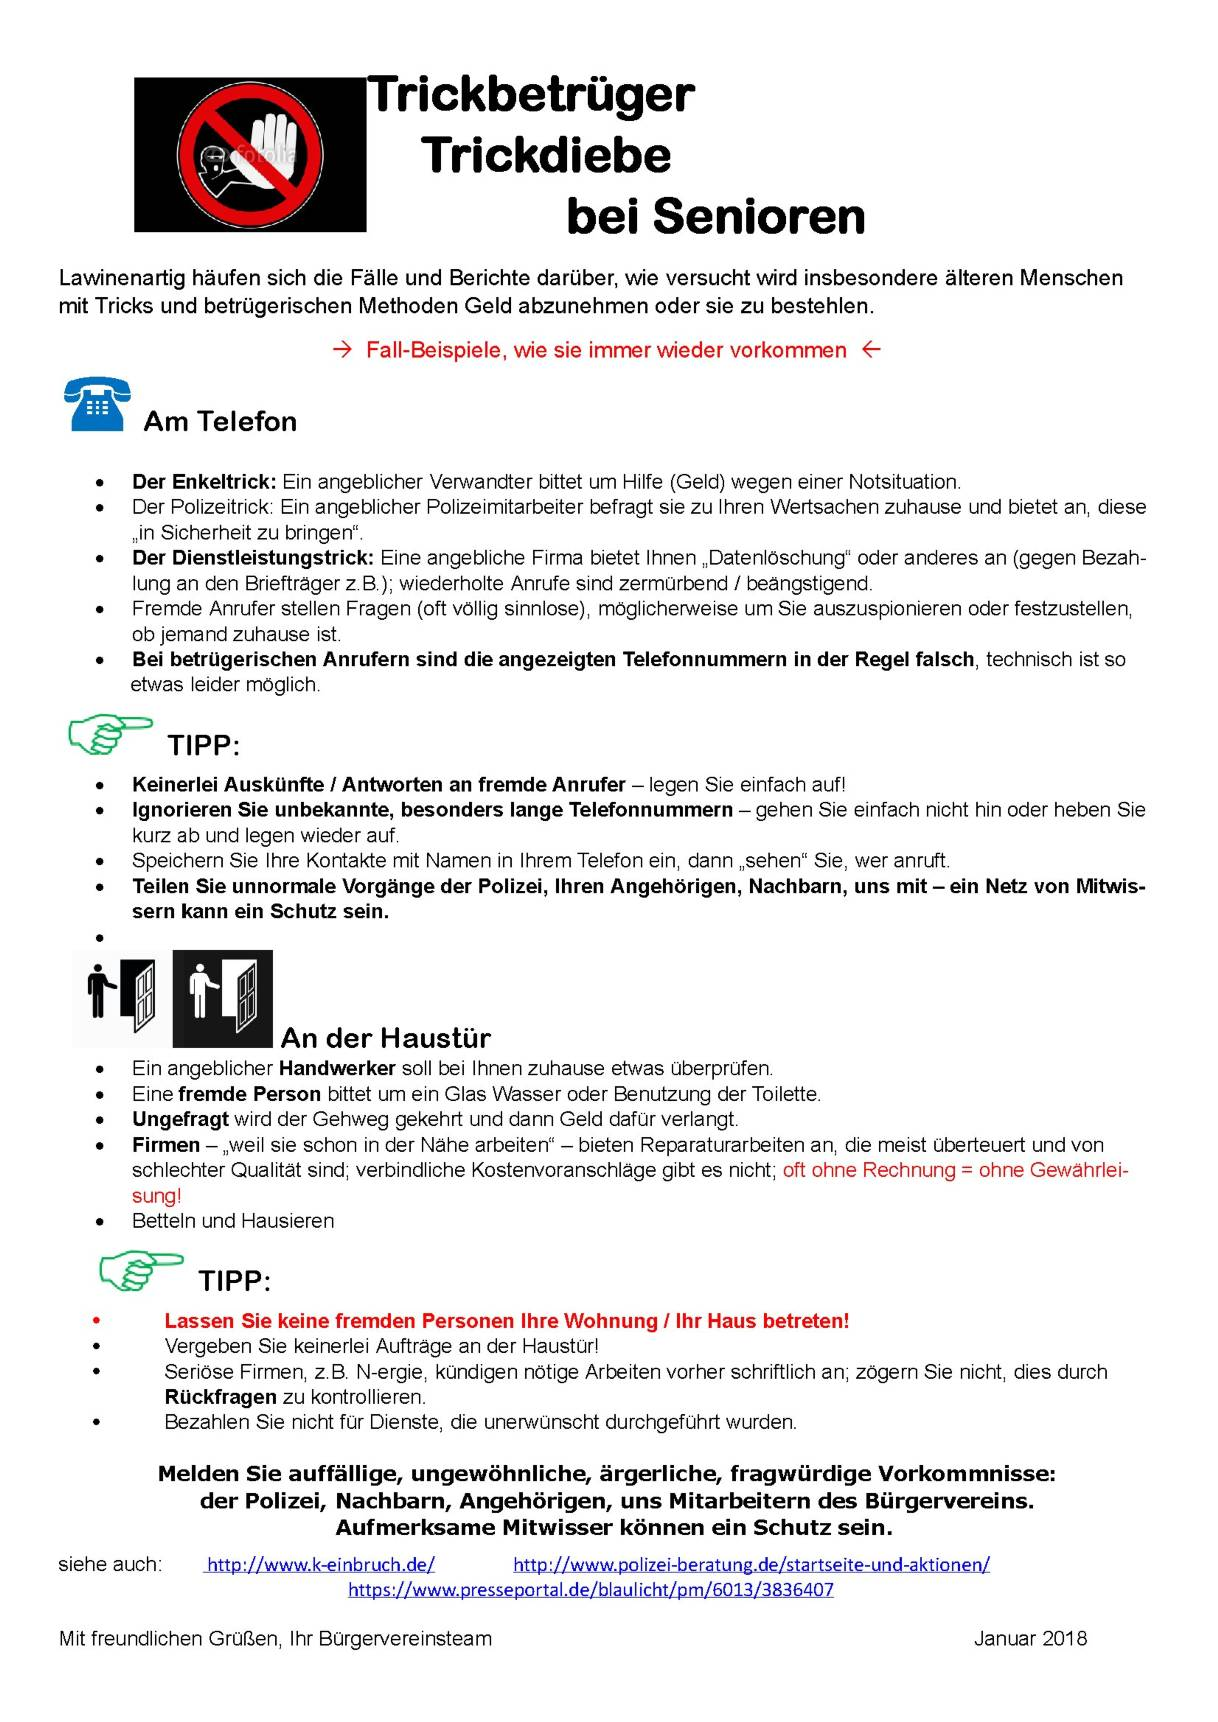 Niedlich Siedlung Angebotsvorlage Ideen - Entry Level Resume ...